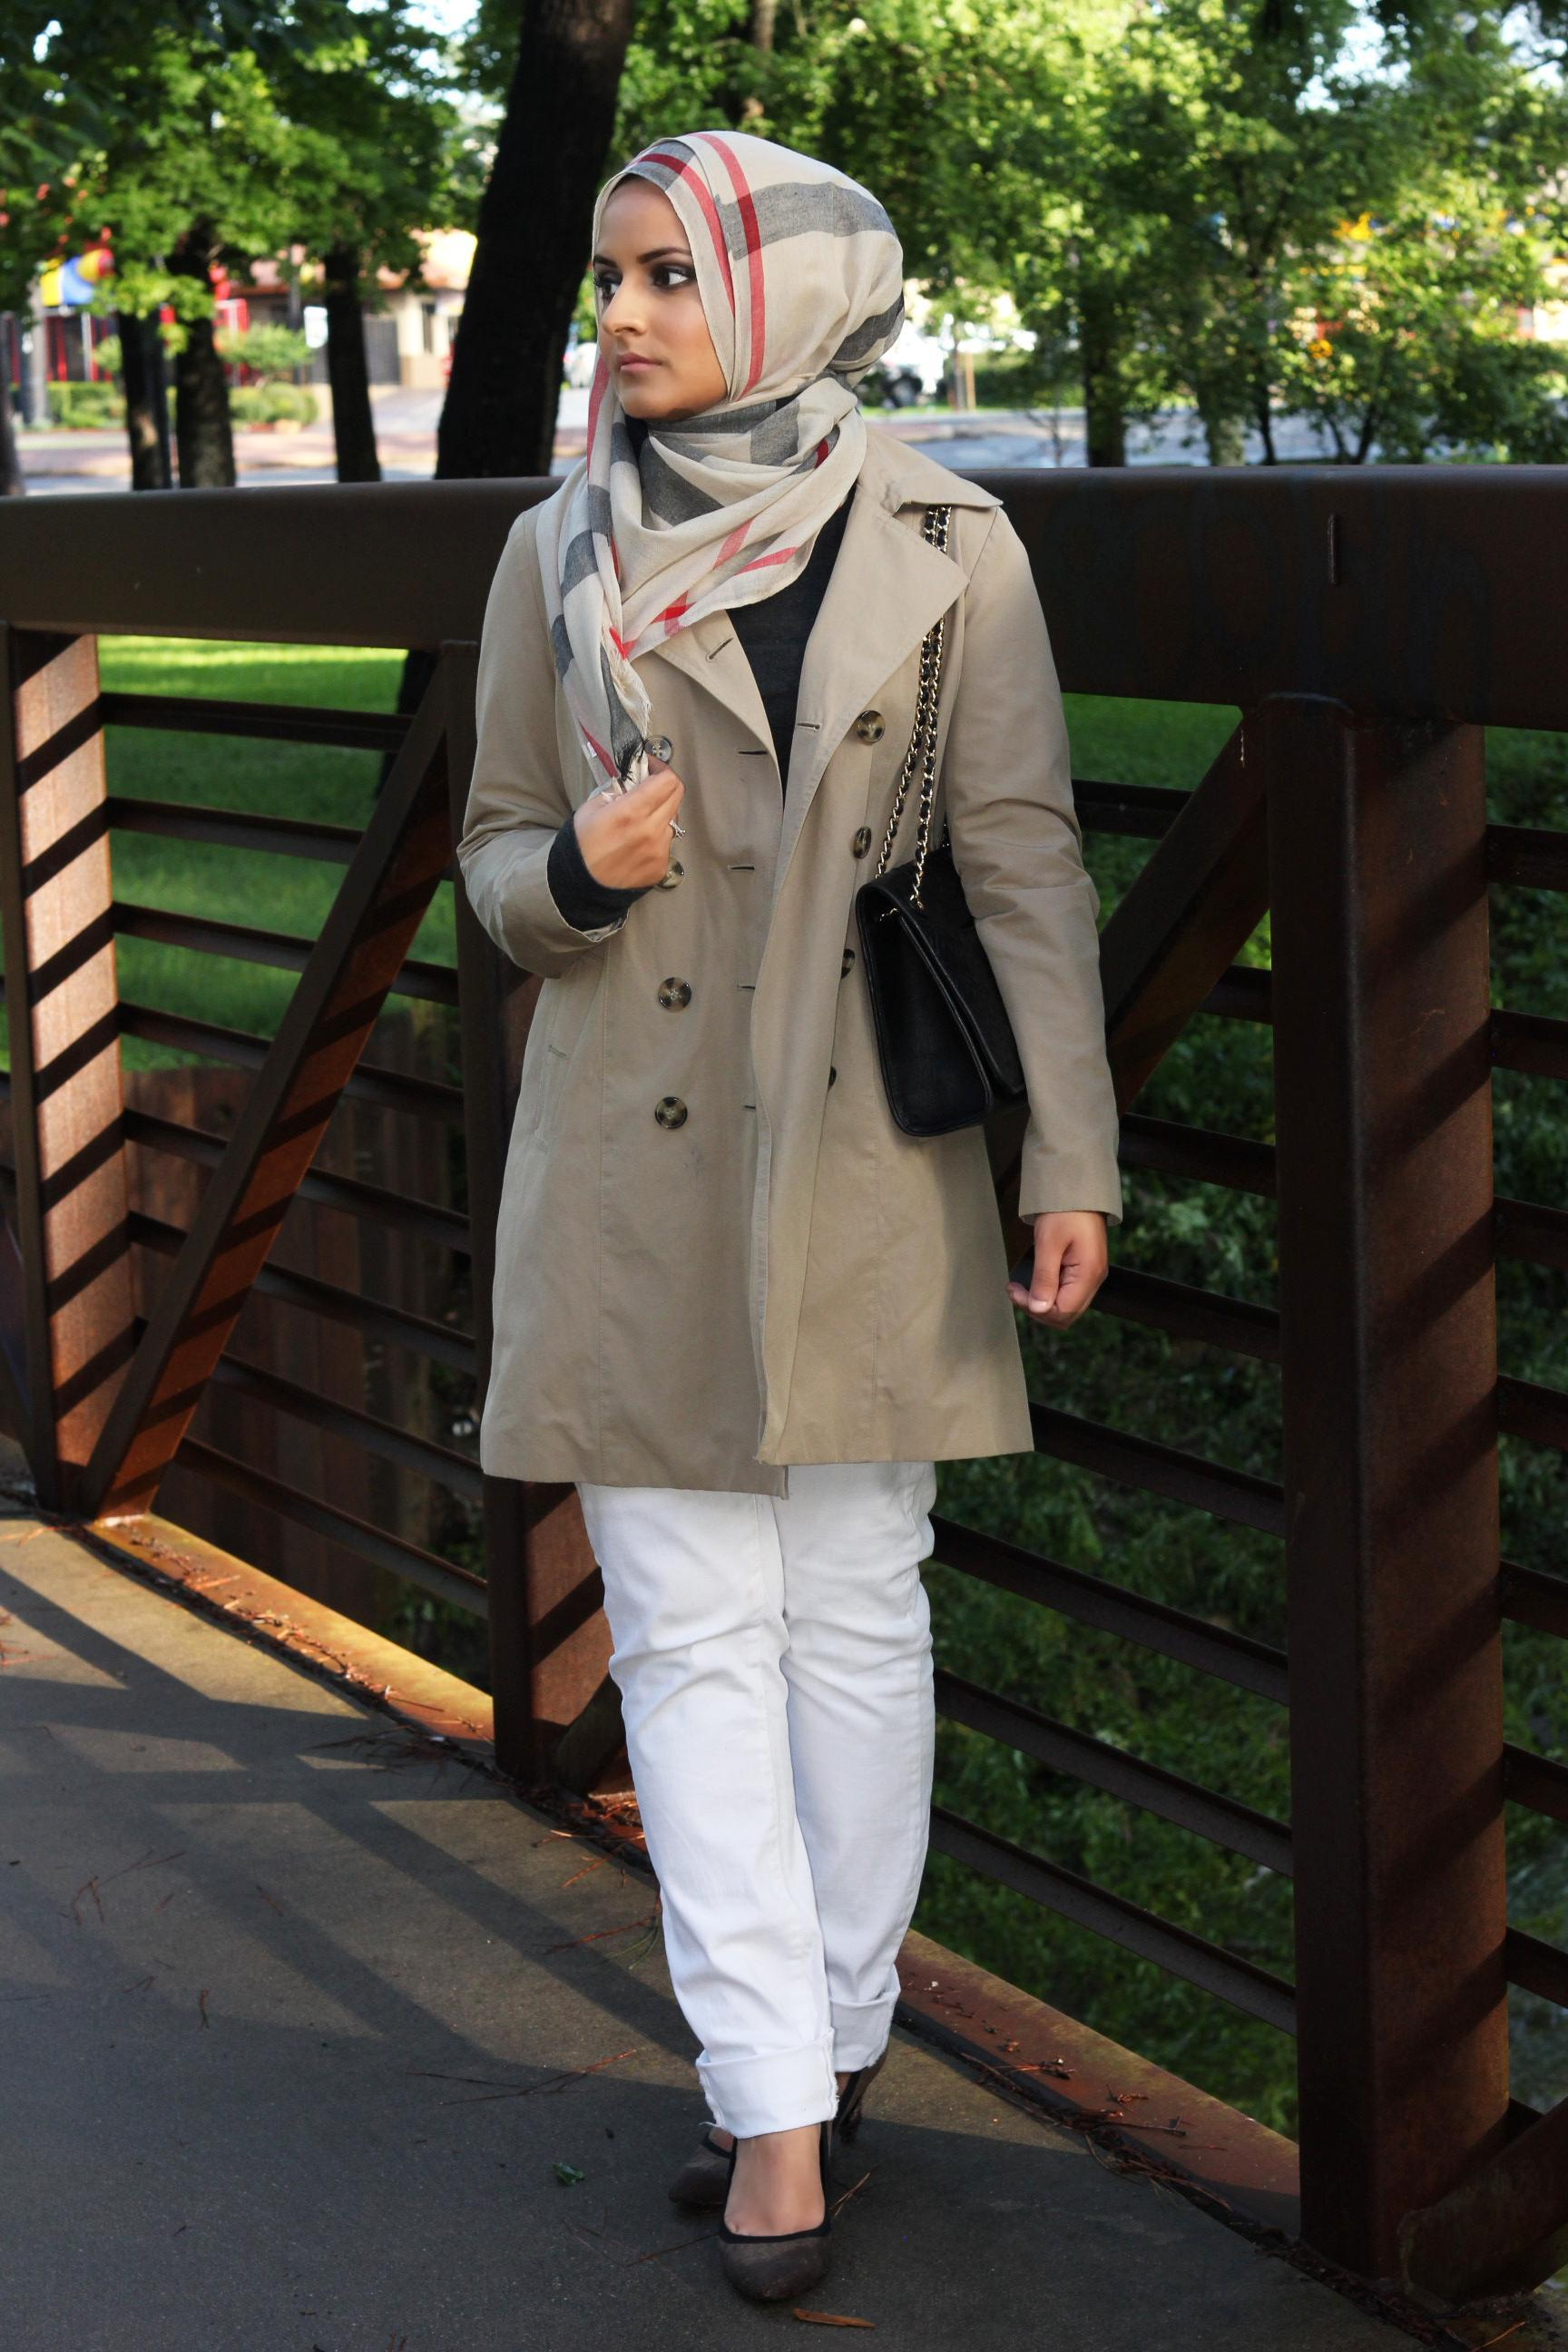 Hijab Outfits for Teenage Girls – 20 Cool Hijab Style Looks foto